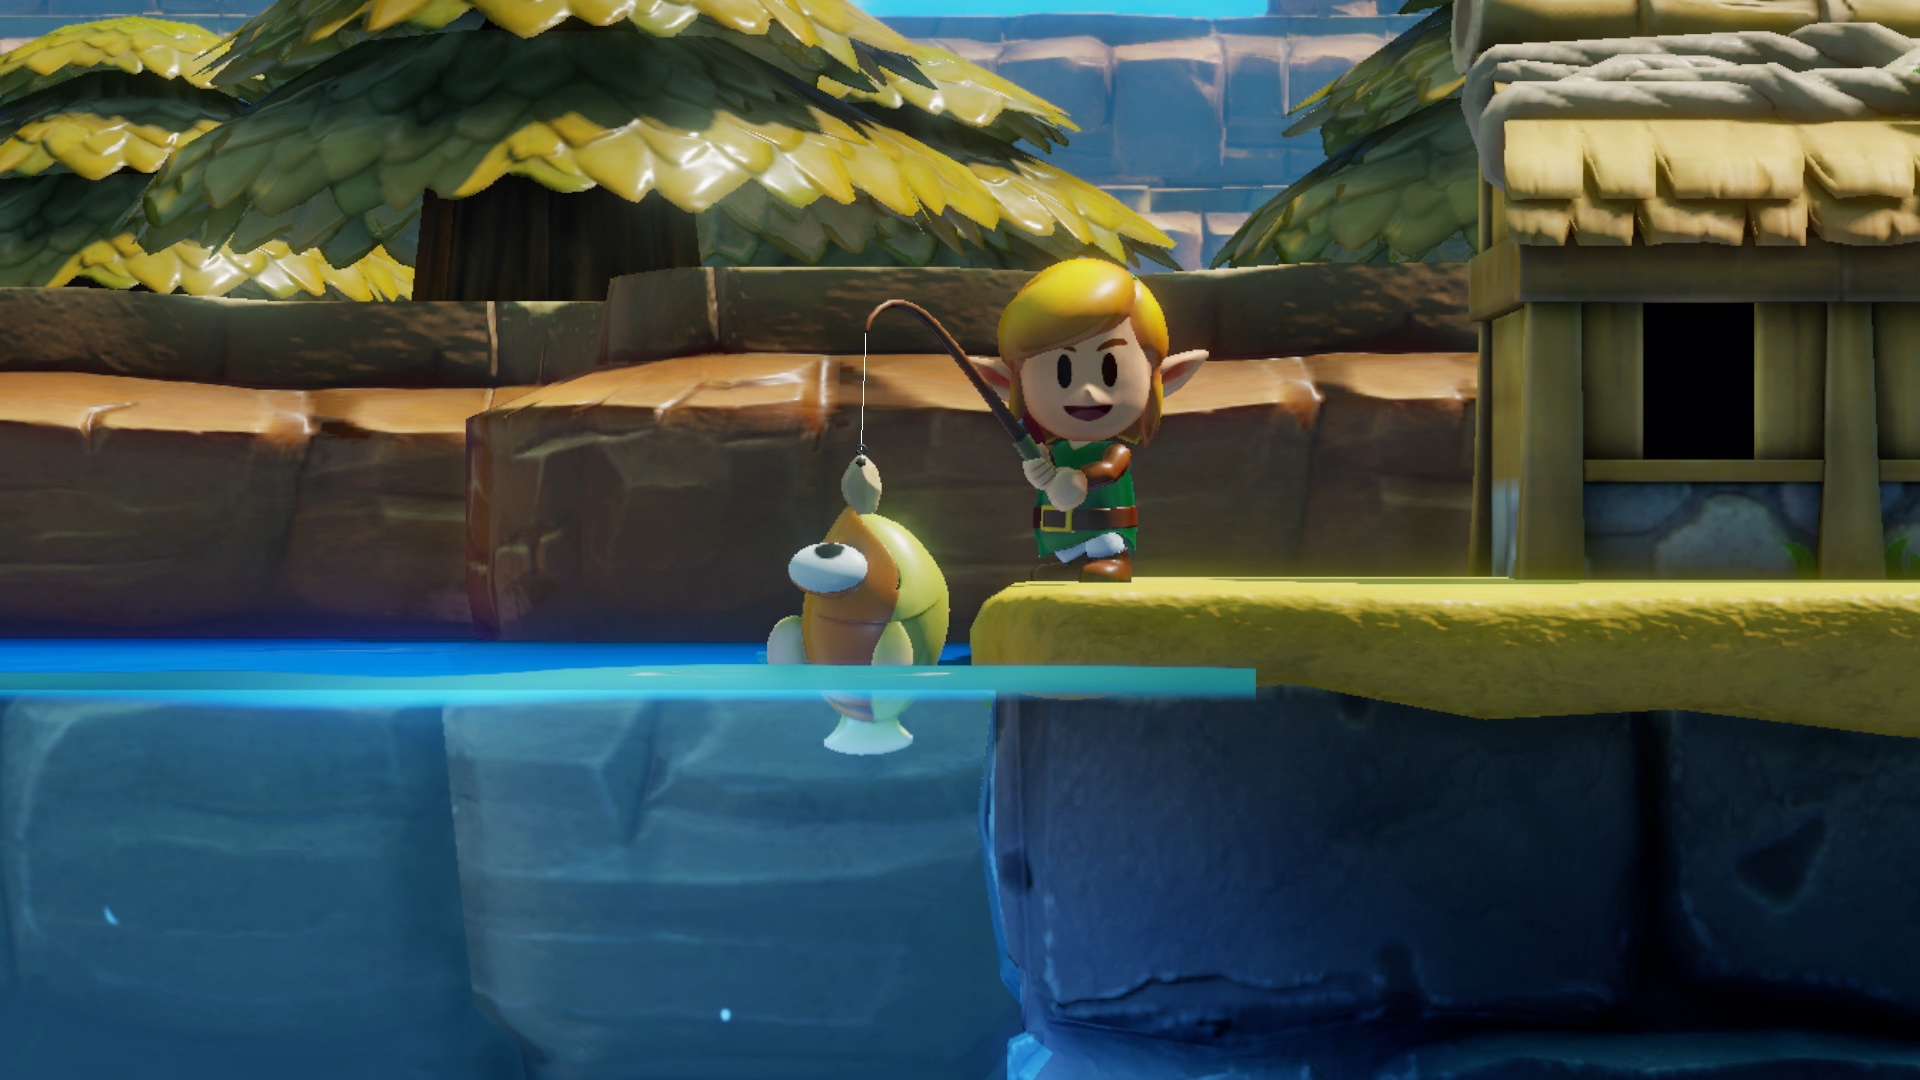 Link catches a fish in a screenshot from The Legend of Zelda: Link's Awakening (2019)